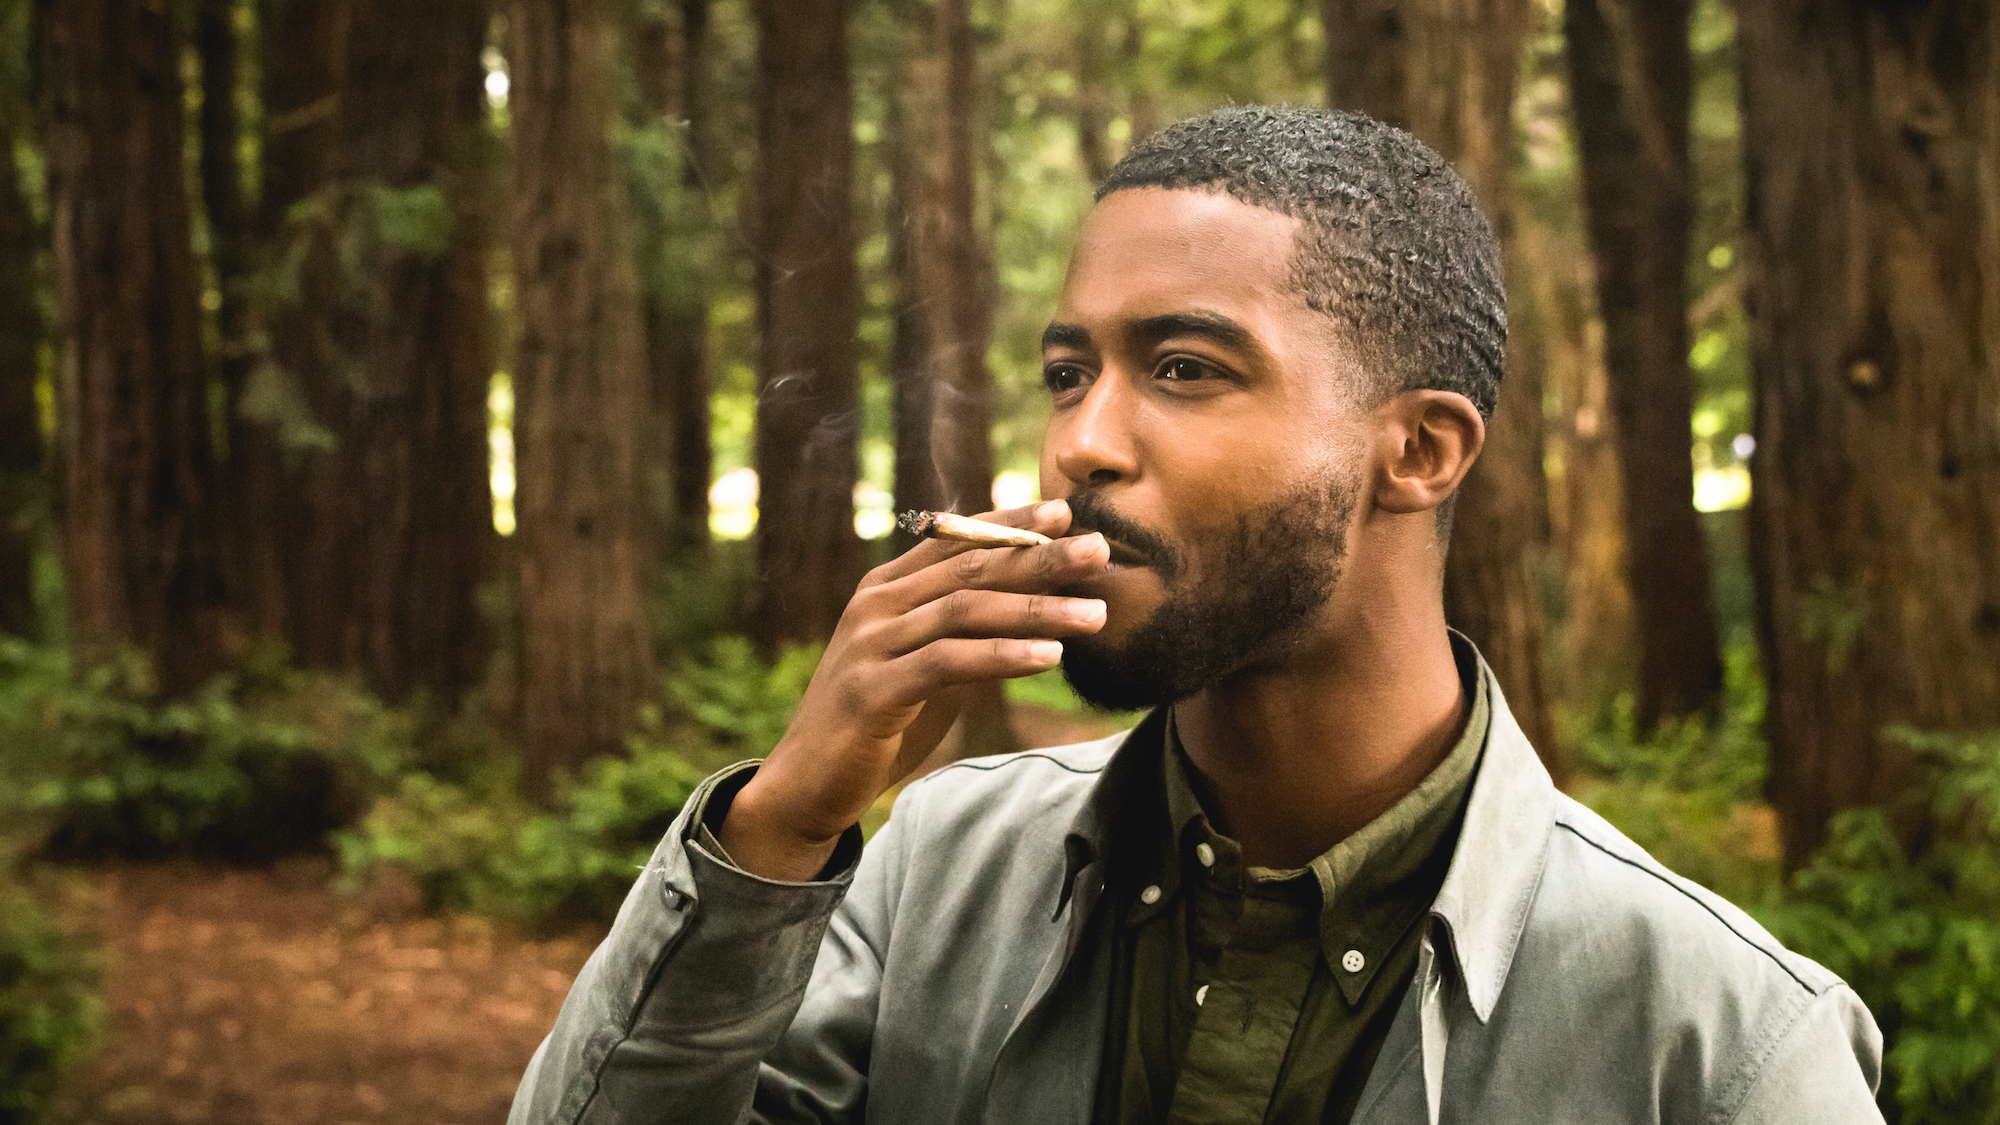 Image of a man in the woods enjoying nature and his marijuana preroll